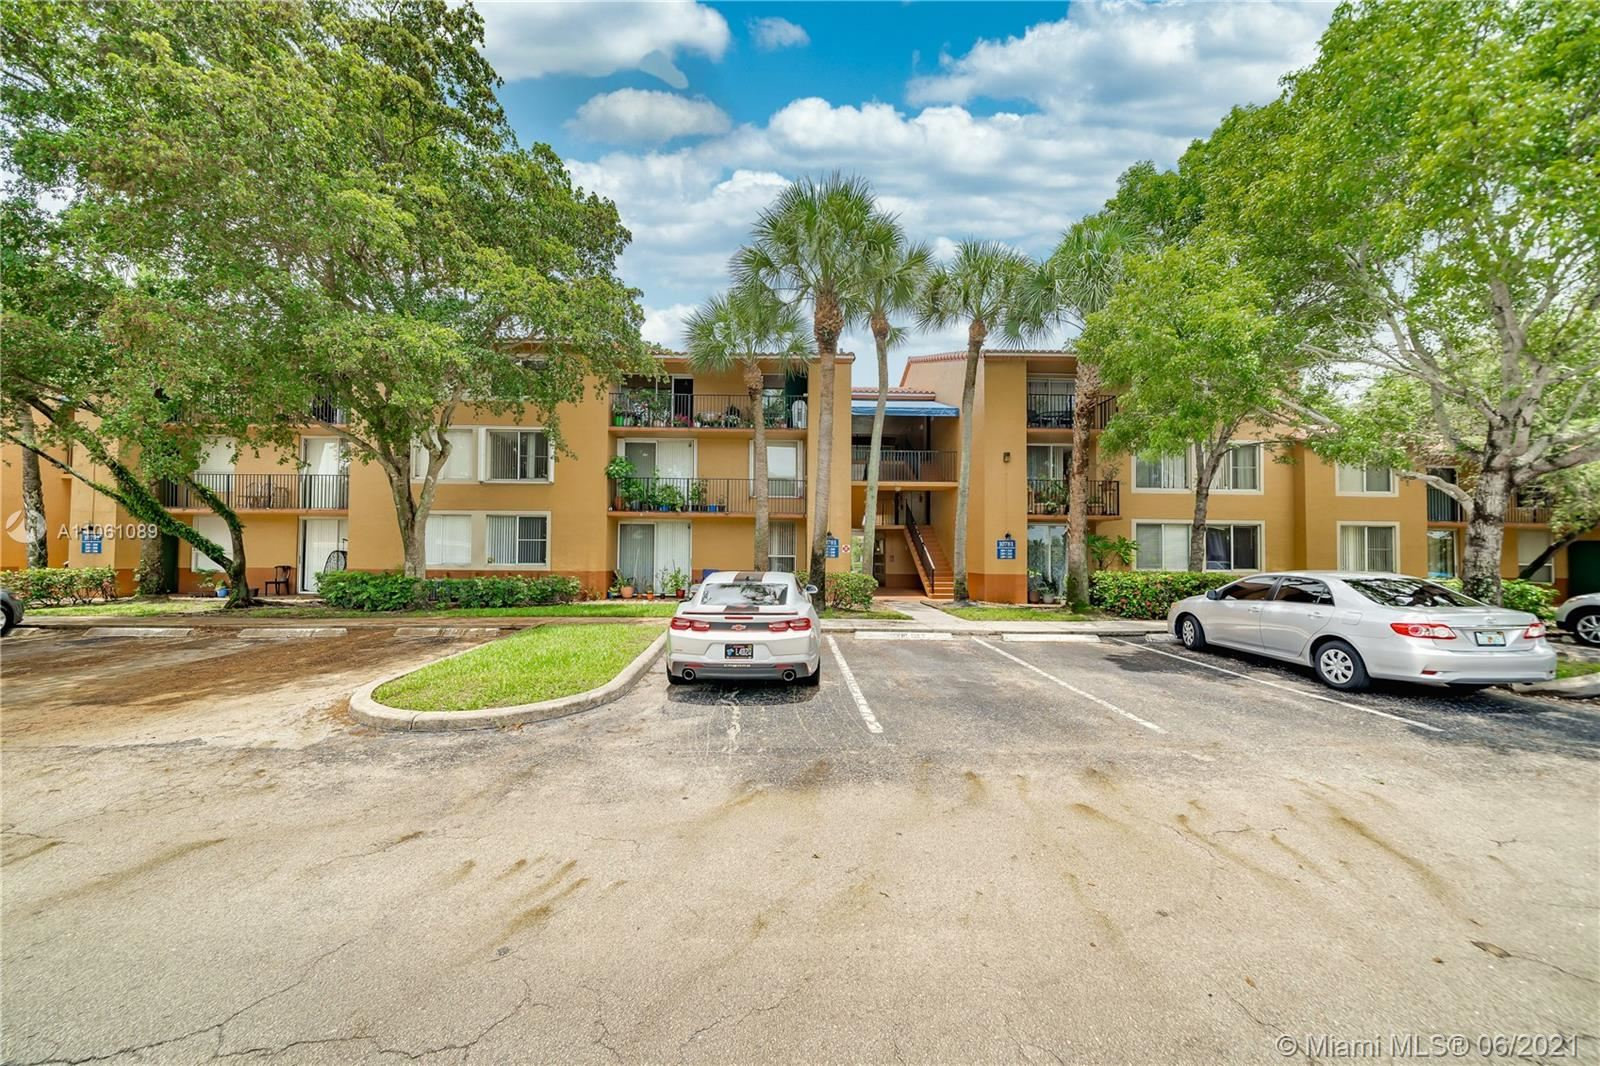 10781 Cleary Blvd #306, Plantation, FL 33324 - #: A11061089